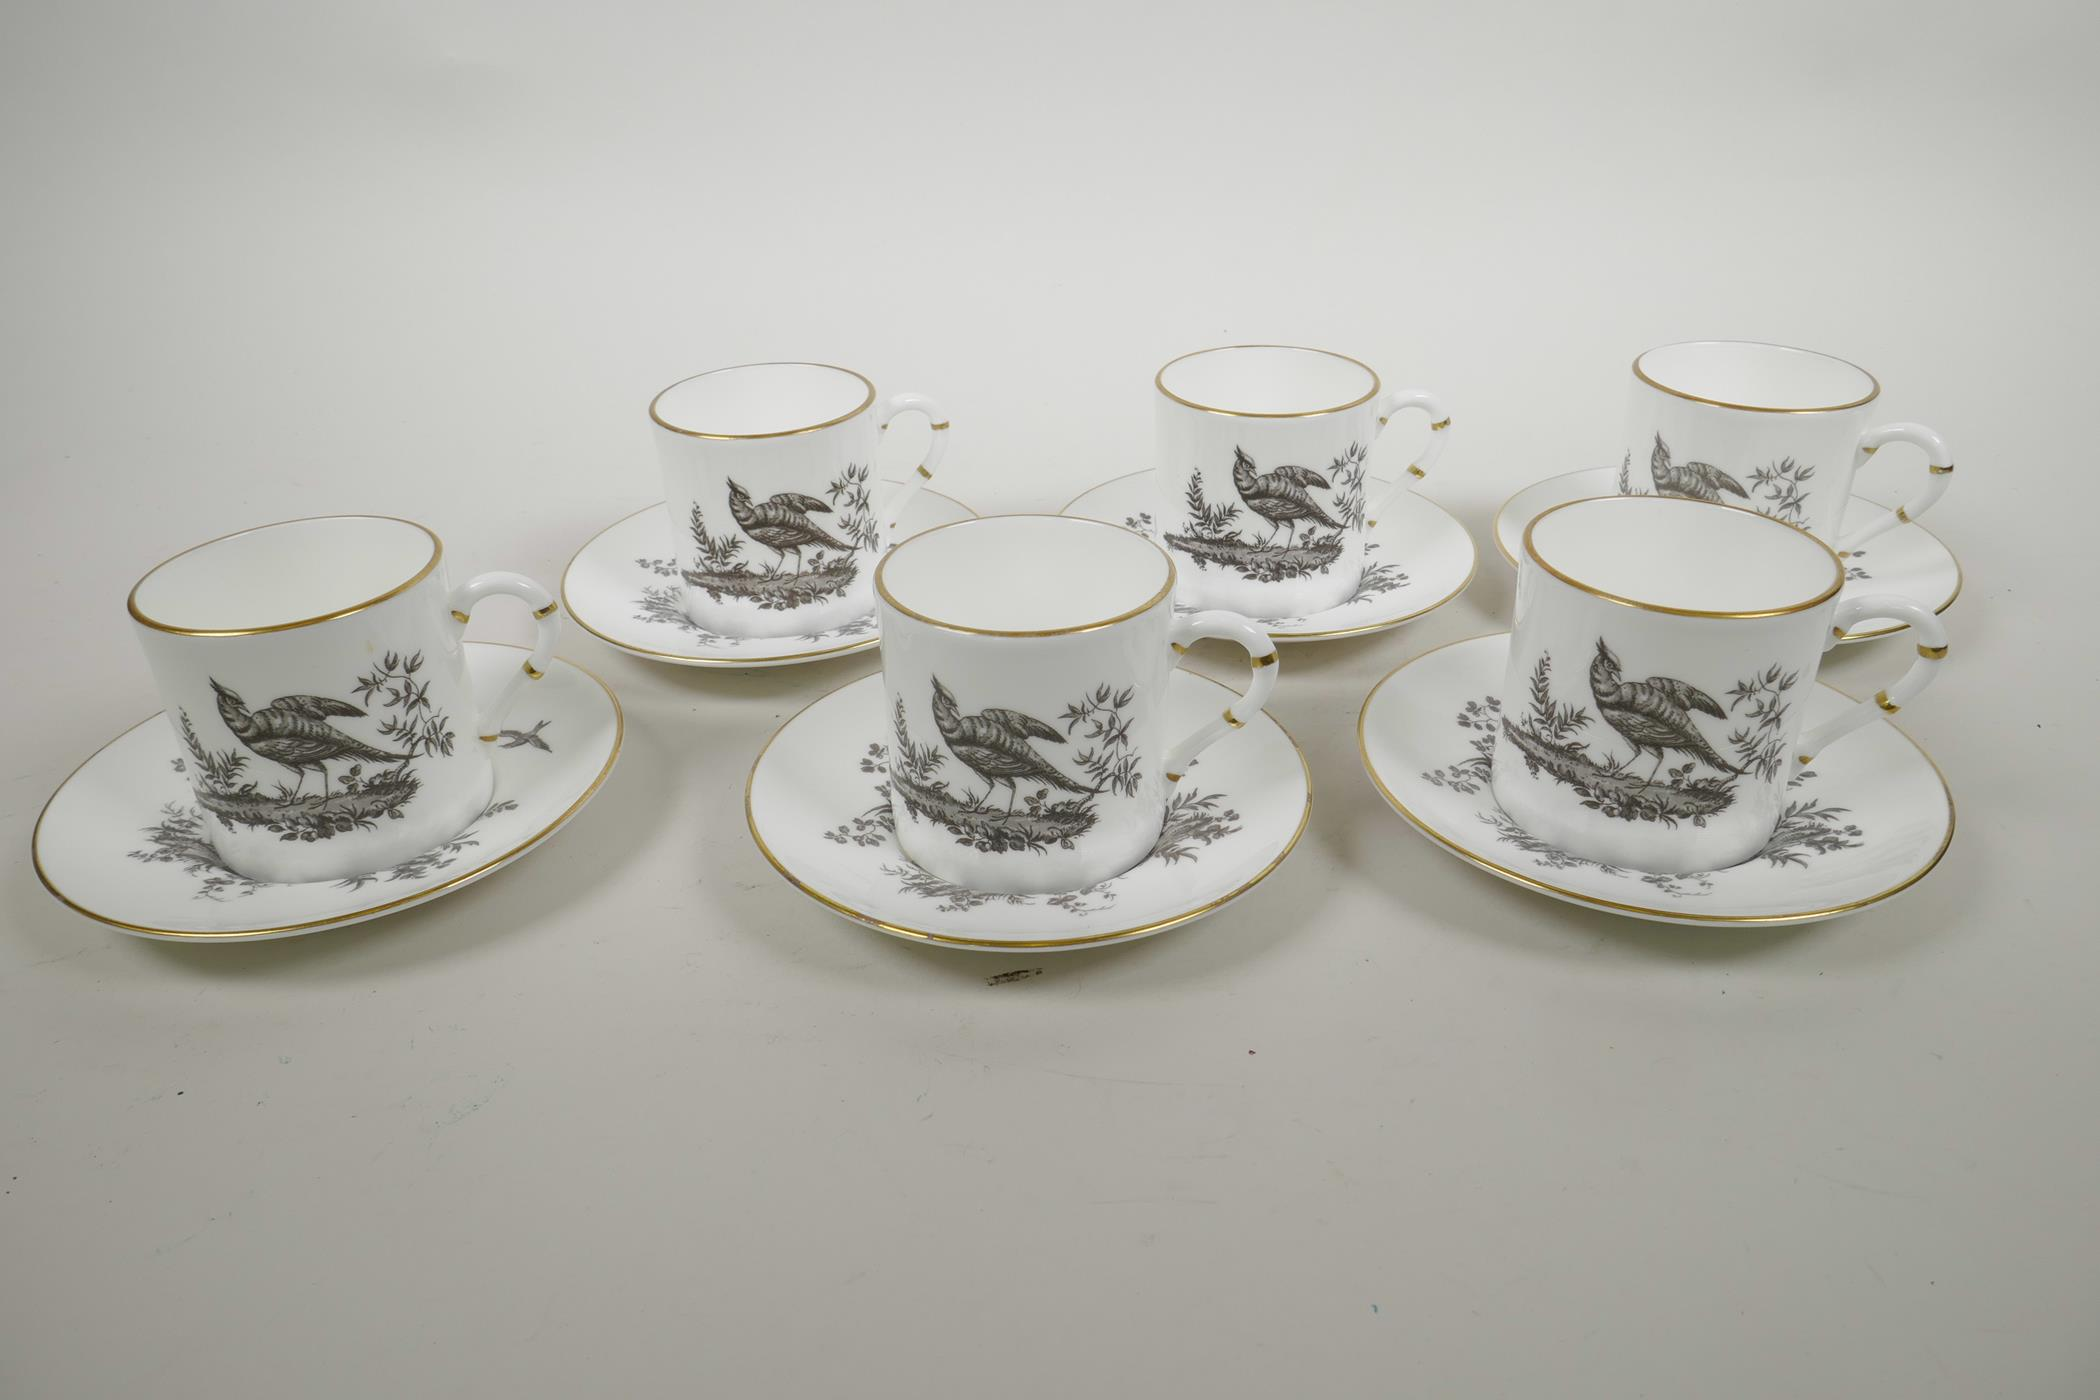 Lot 12 - A Royal Worcester porcelain coffee service comprising six cups and saucers with monochrome